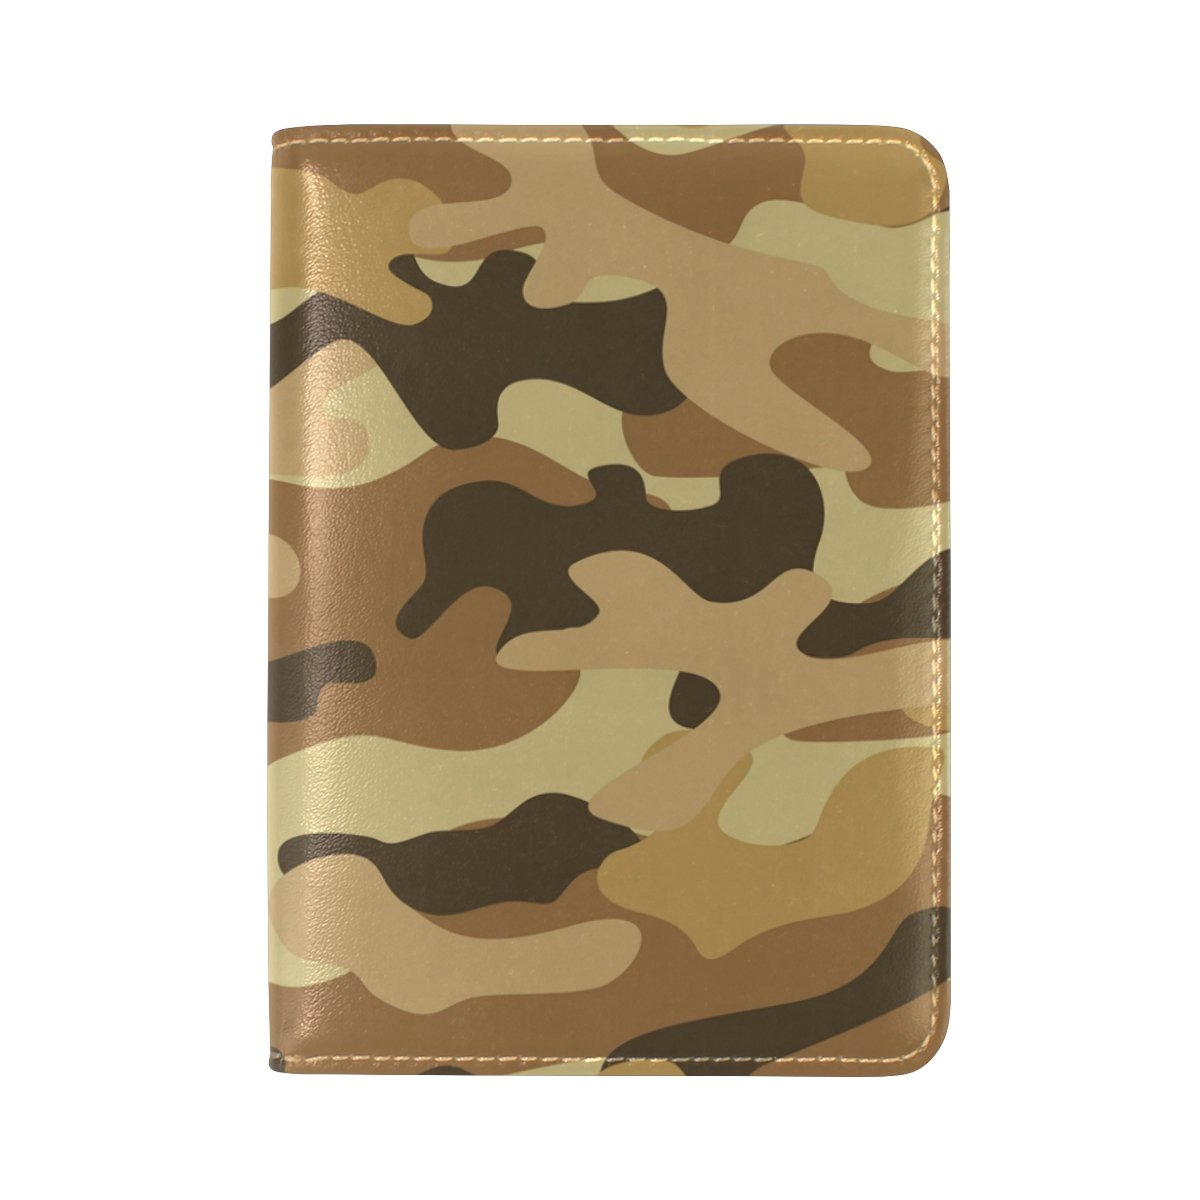 ALAZA Camouflage Camo Leather Passport Holder Cover Case Travel One Pocket